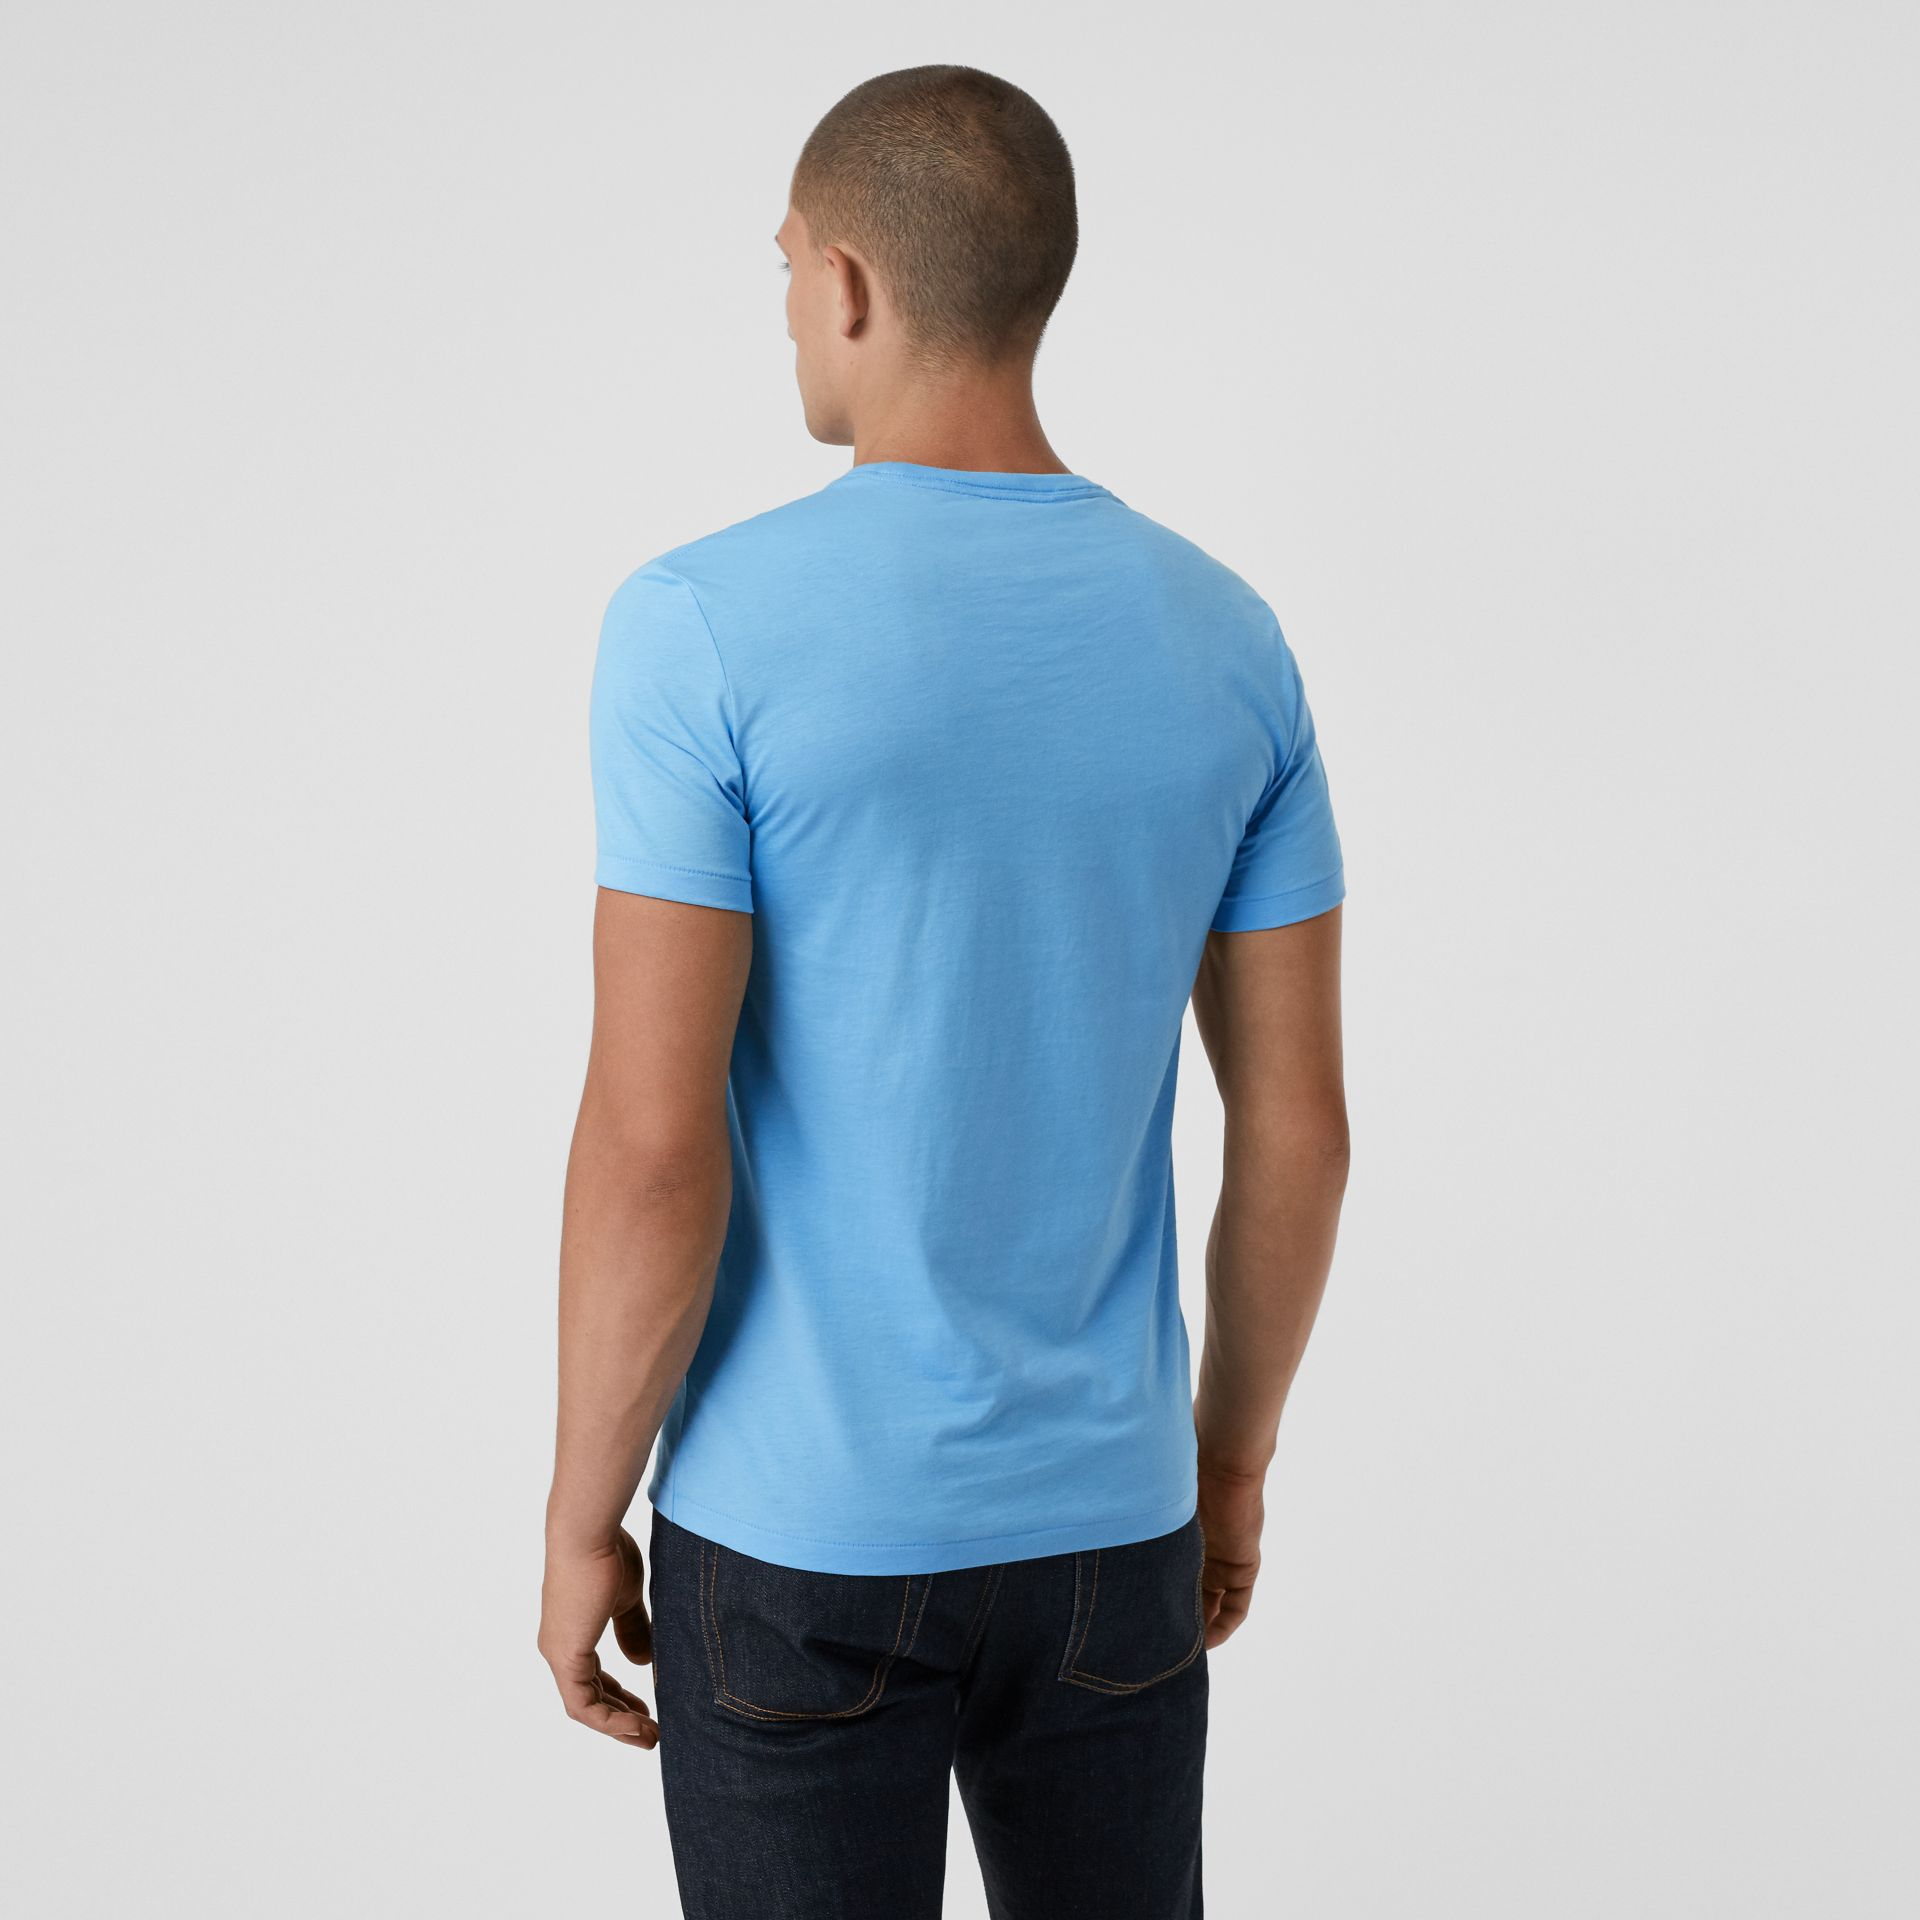 Cotton Jersey T-shirt in Blue Topaz - Men | Burberry - gallery image 2